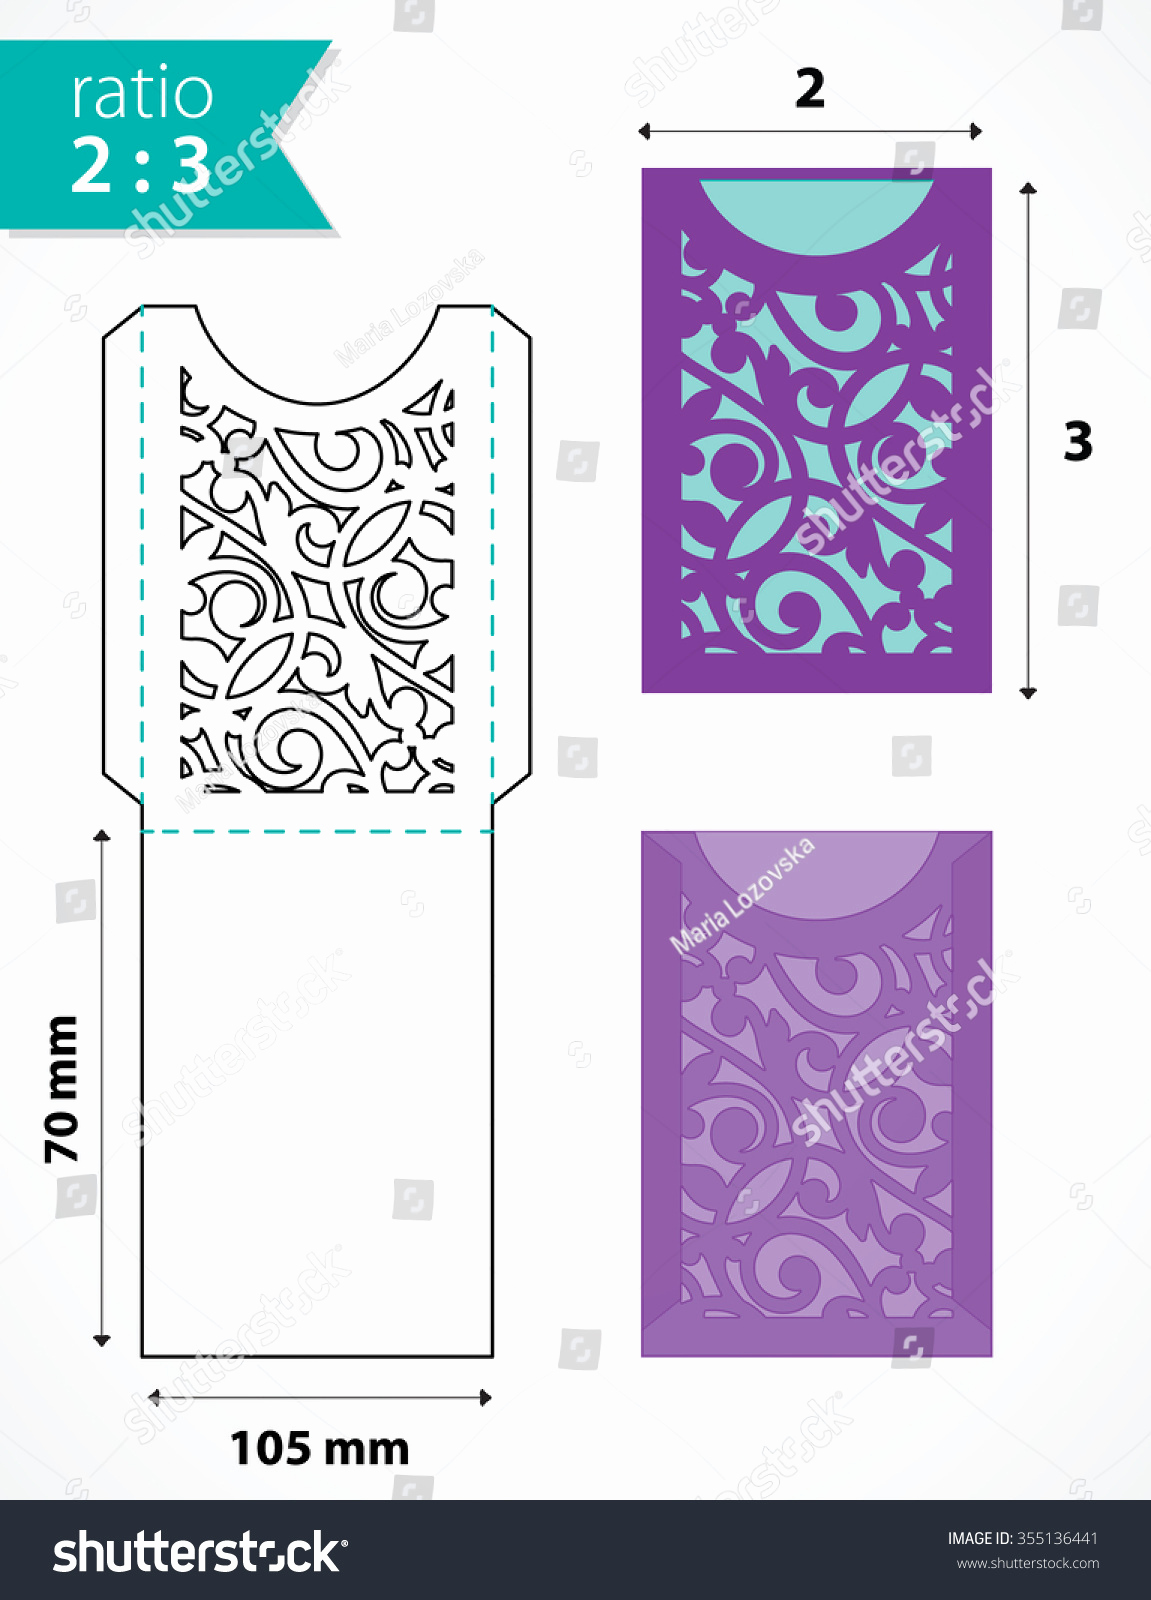 Wedding Invitation Envelope Template Inspirational Die Cut Pocket Envelope Template with Cutout Pattern